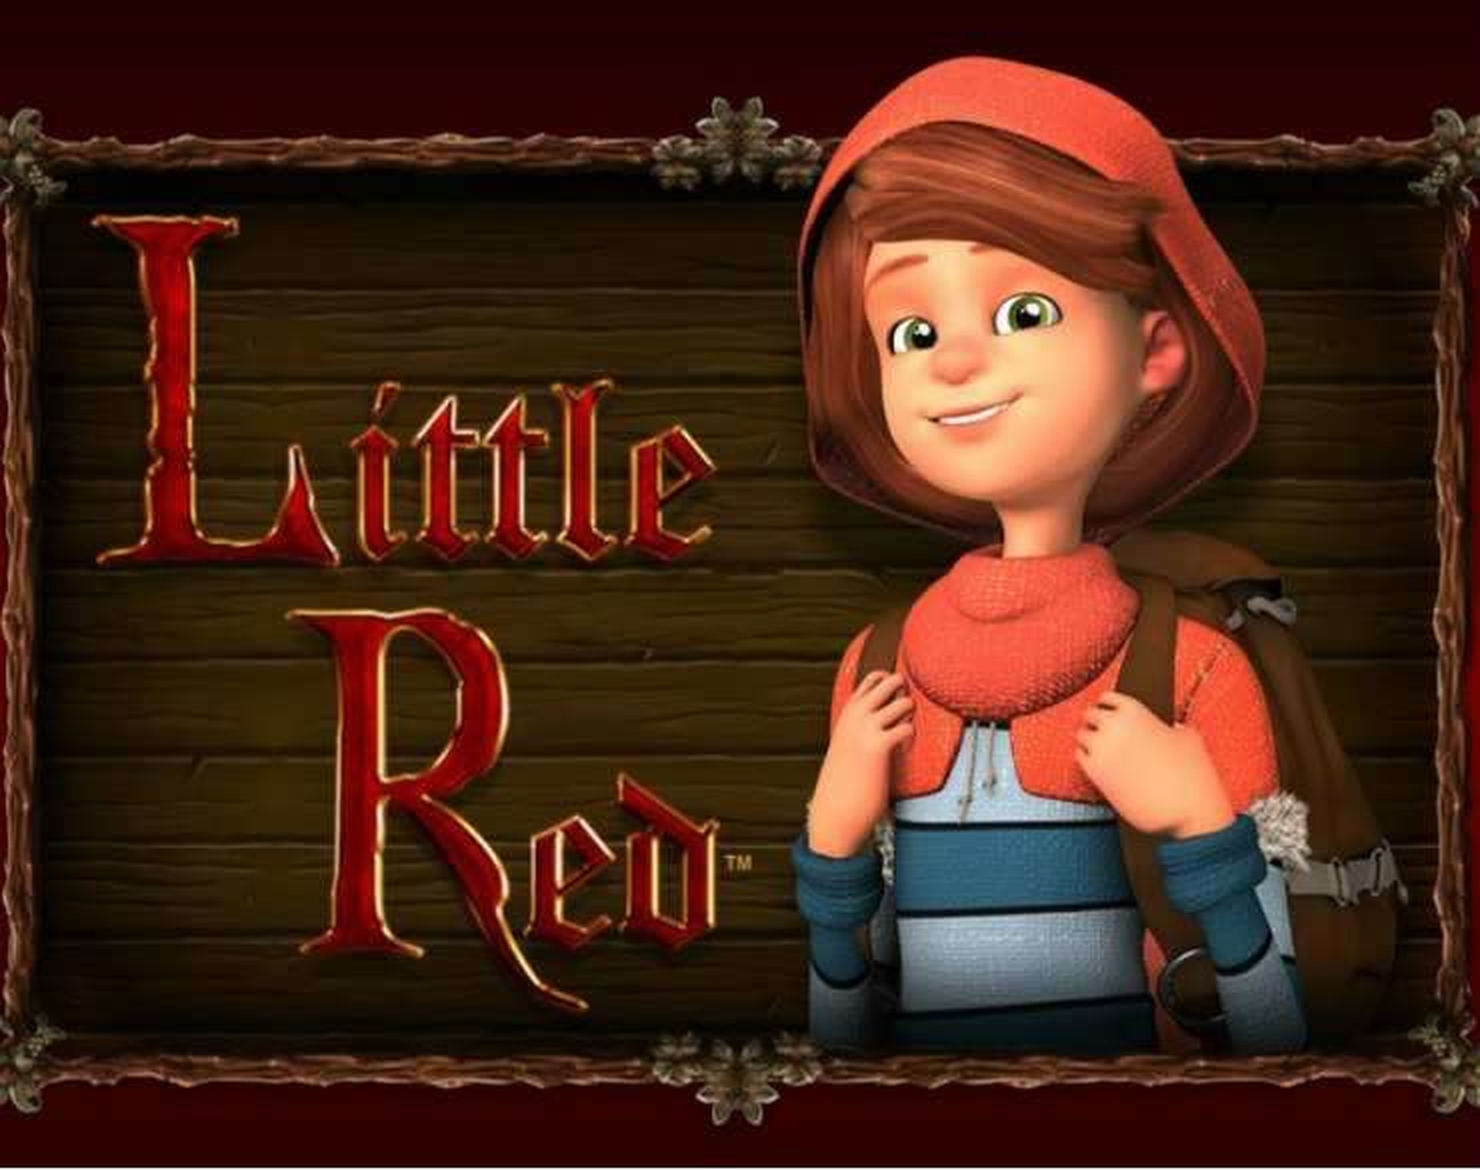 The Little Red Riding Hood (Cayetano Gaming) Online Slot Demo Game by Cayetano Gaming